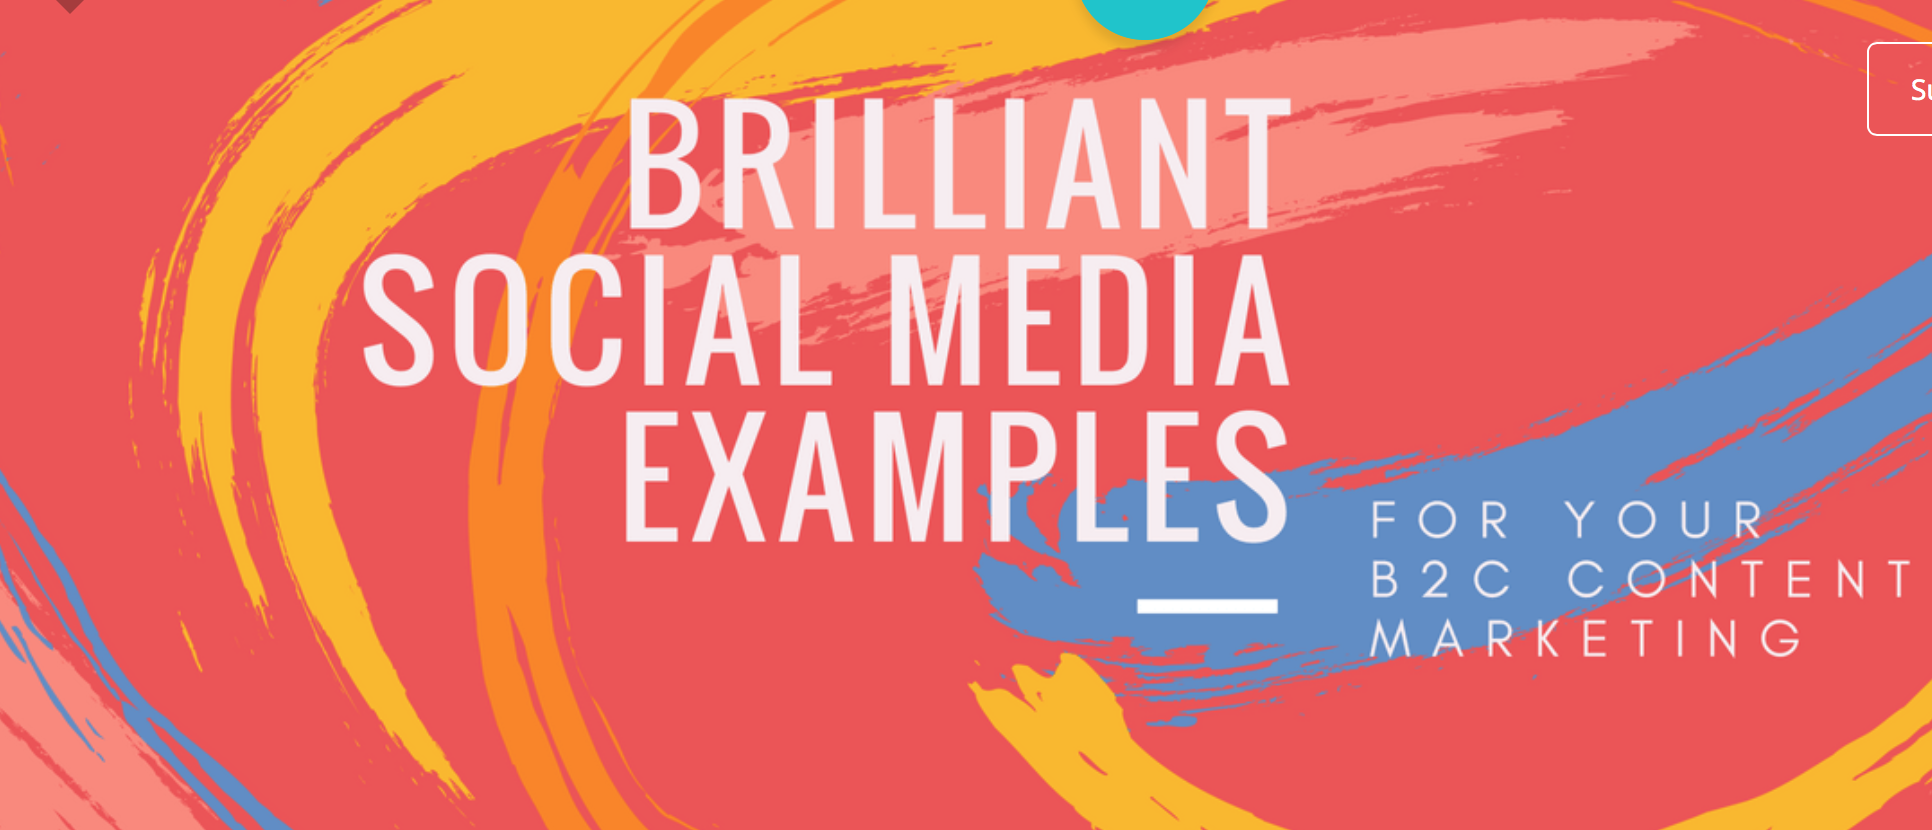 10 Brilliant Social Media Examples For Your B2c Content Marketing